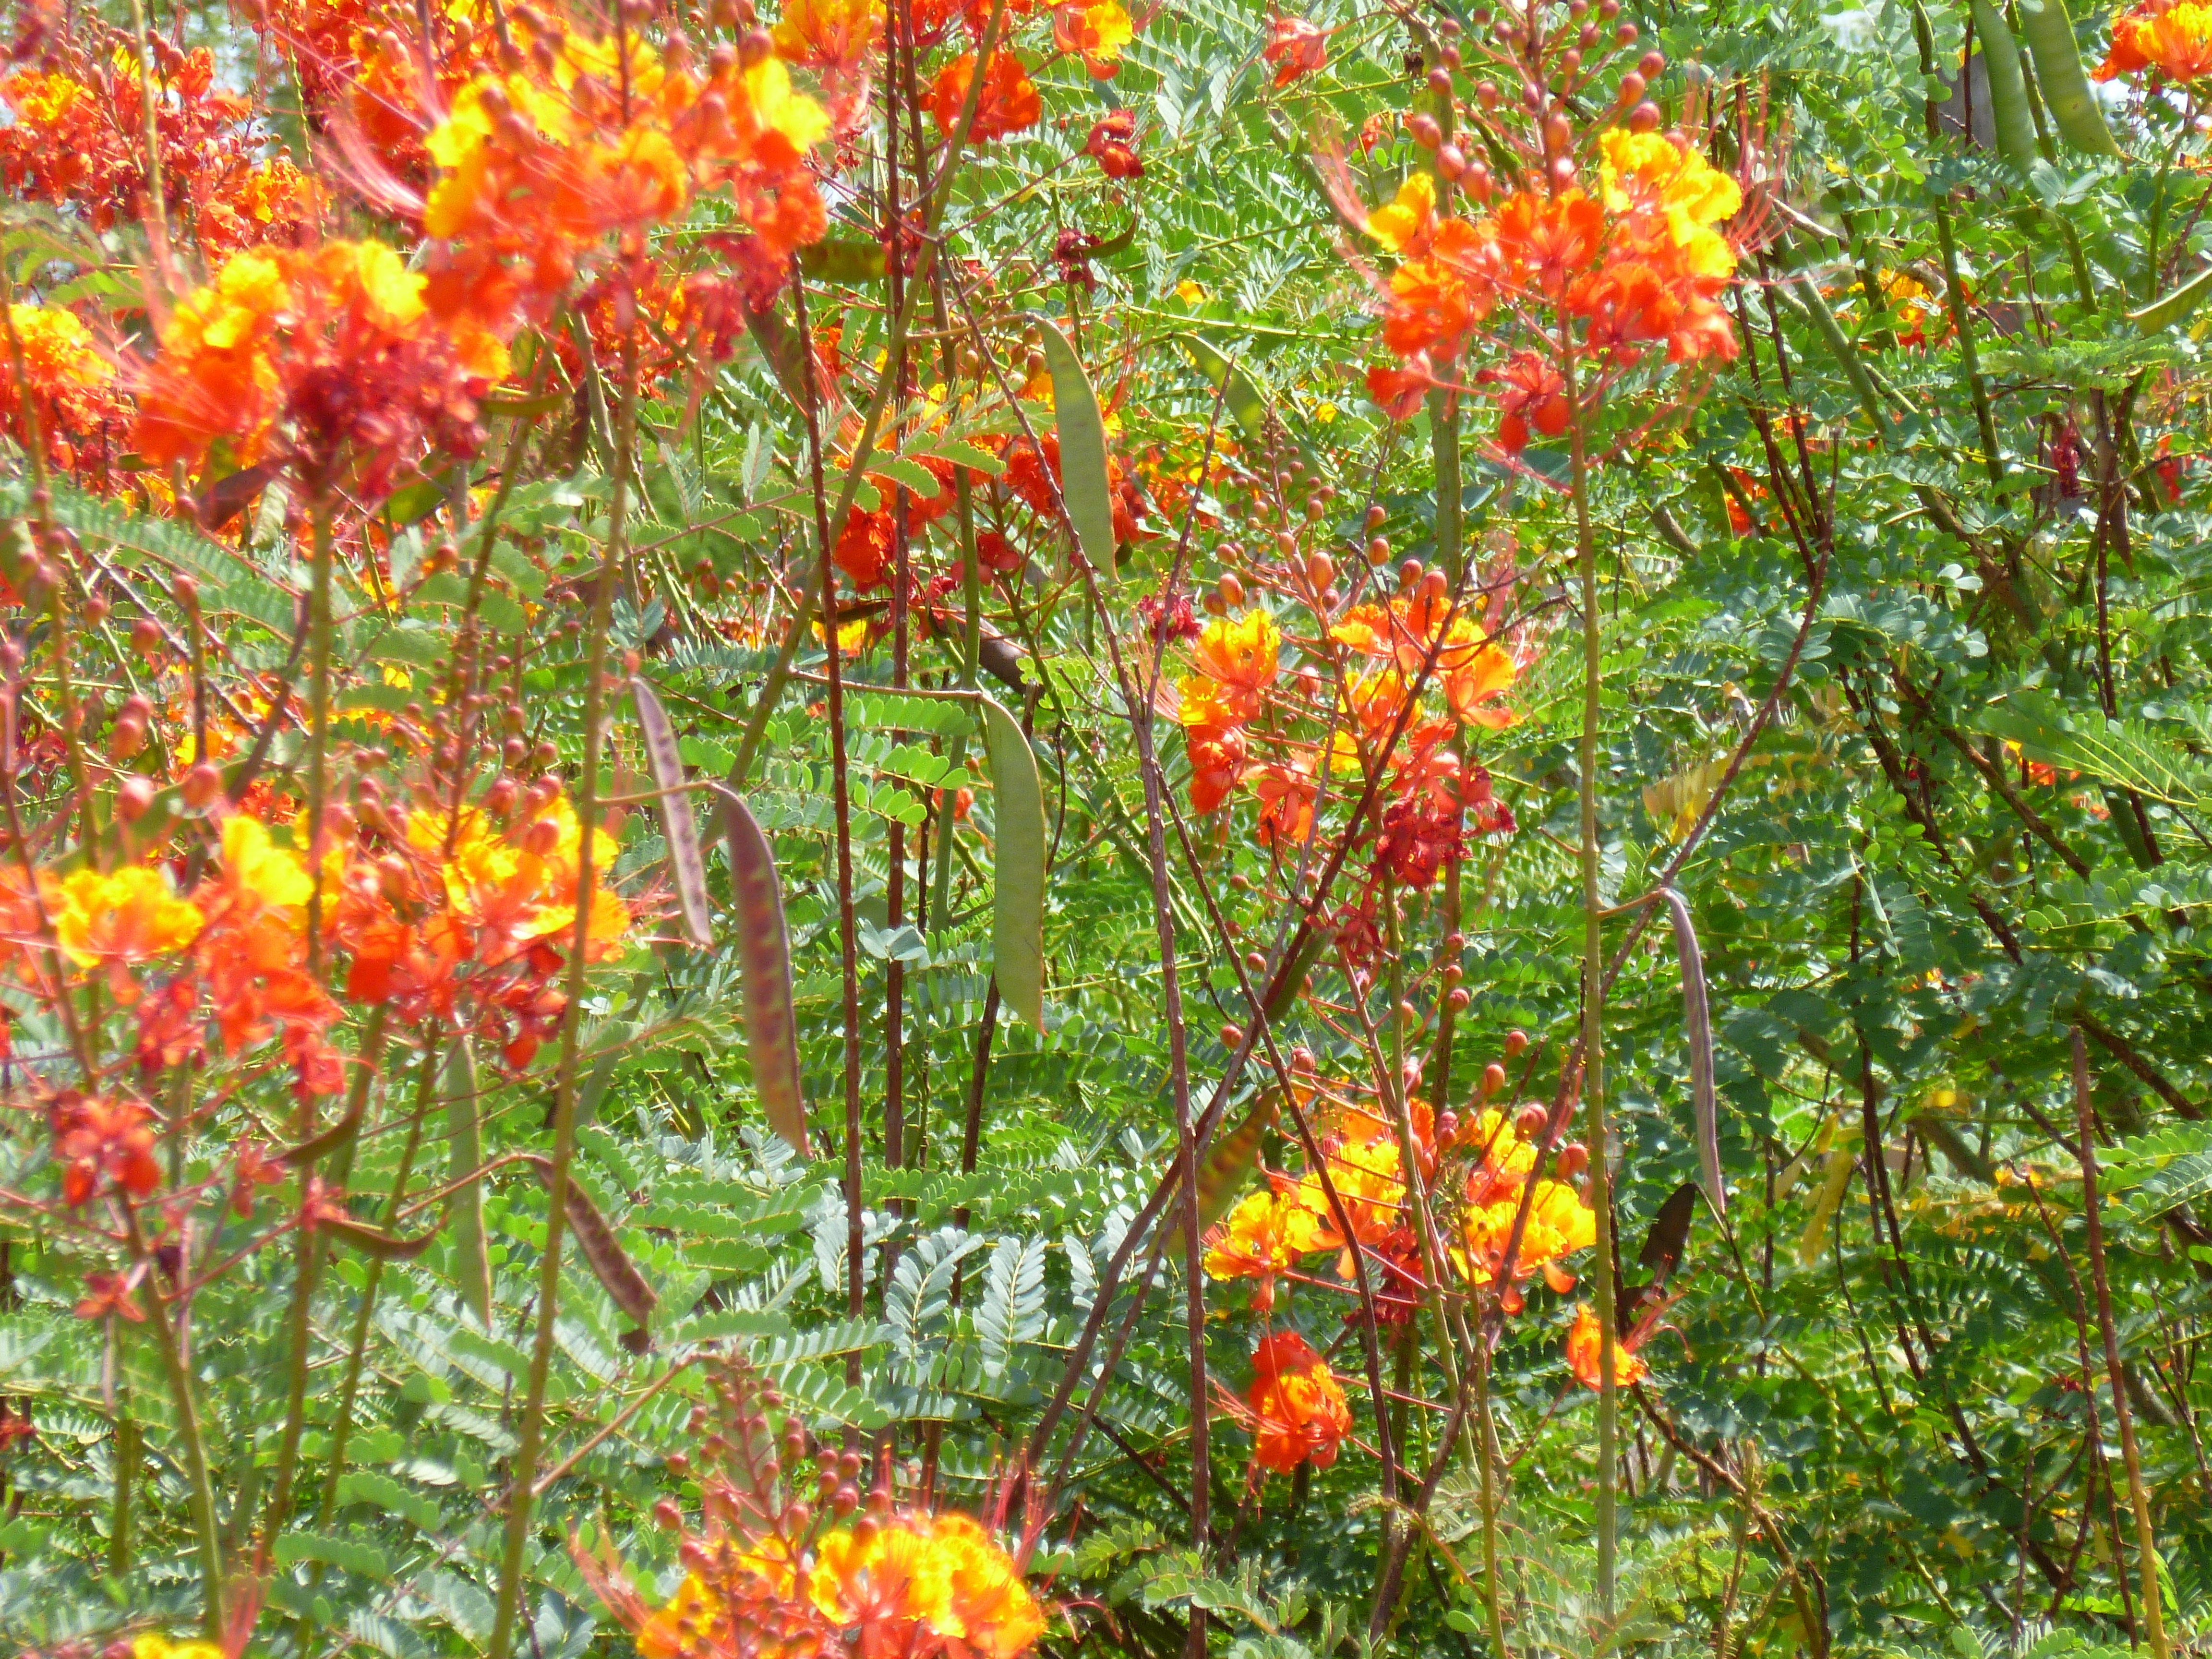 Bushes With Red Orange And Yellow Flowers In Arizona Red Bird Of